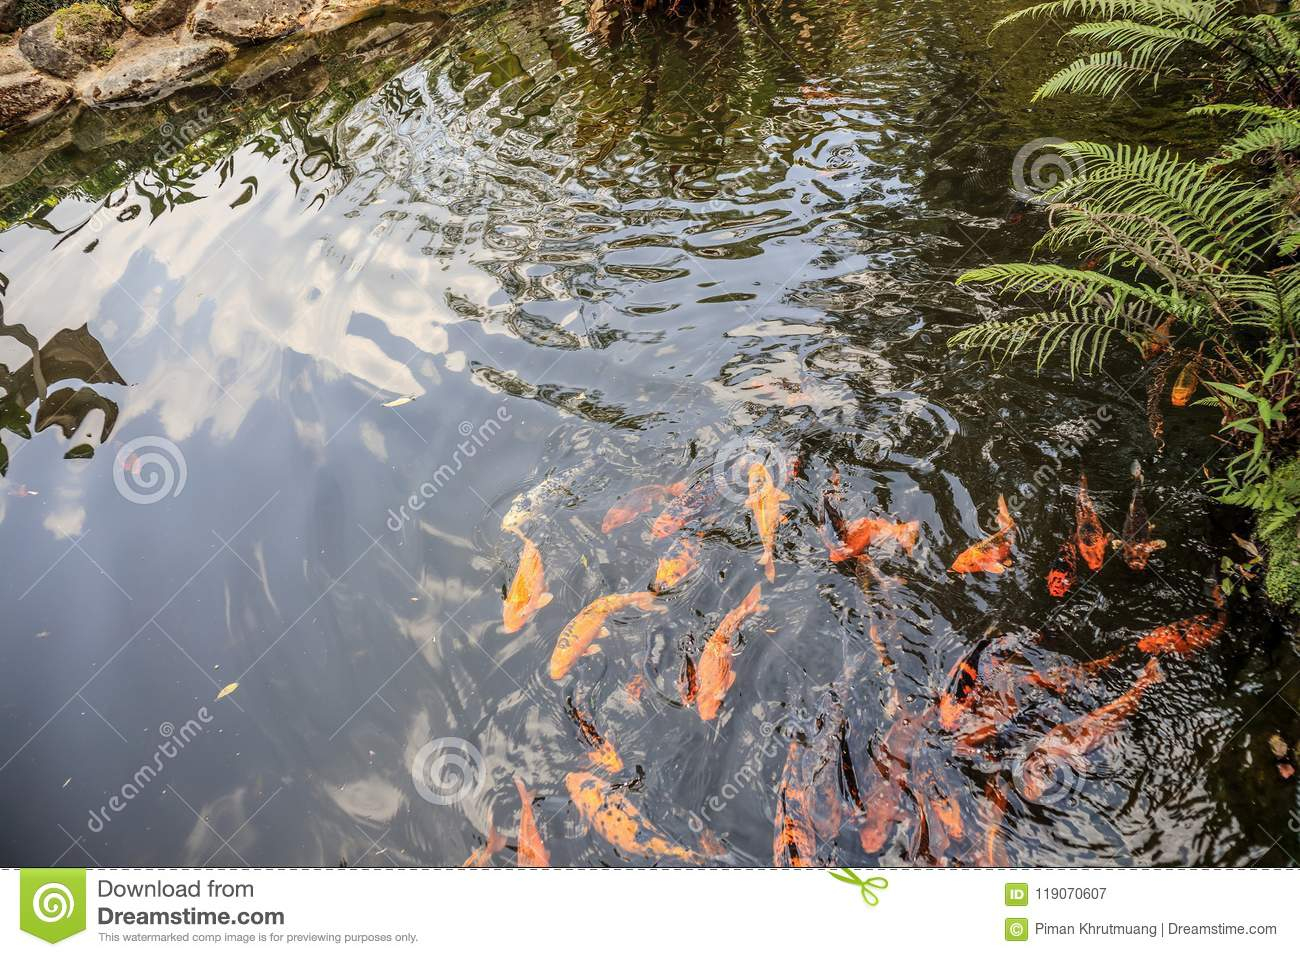 Koi Fish In Pond Decorative Landscape Design Stock Image Image Of Carp Color 119070607